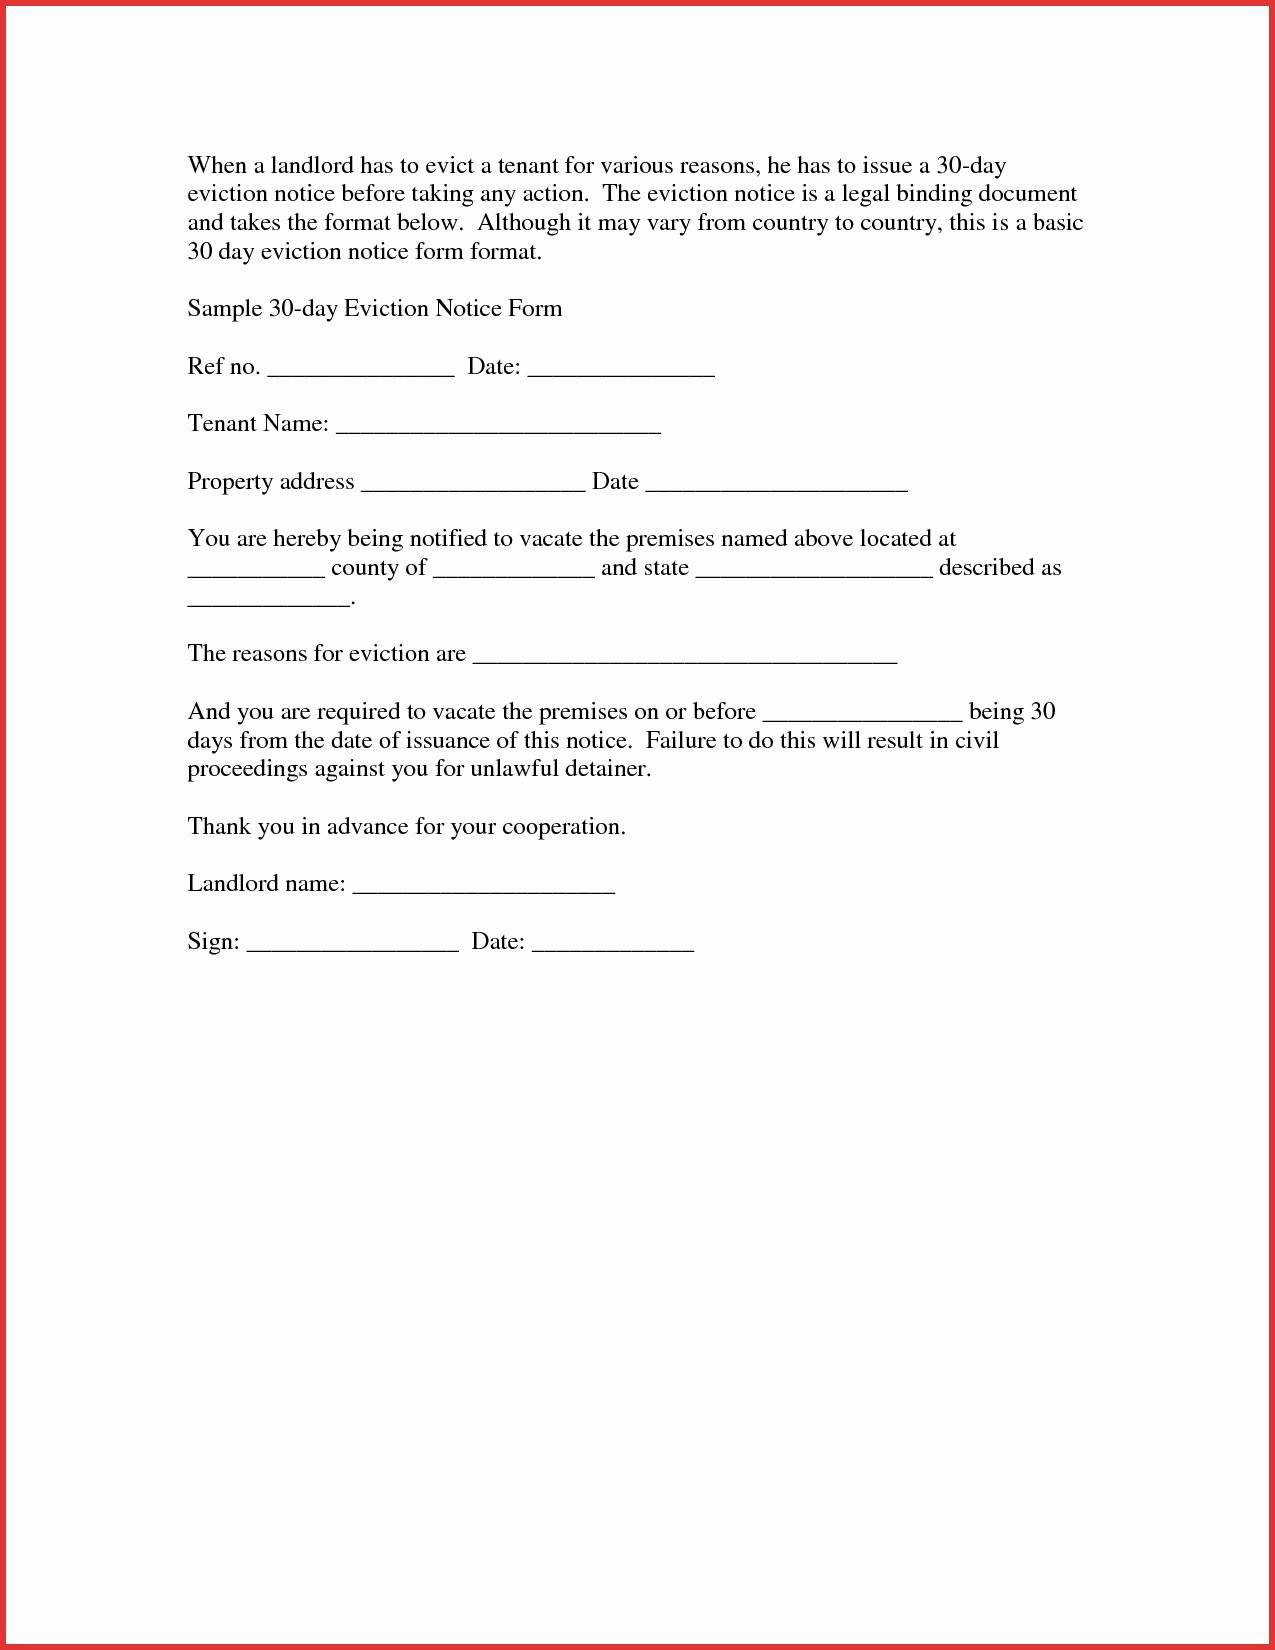 30 Day Eviction Letter Template - Tenant Eviction Letter Template Best Free Eviction Notice